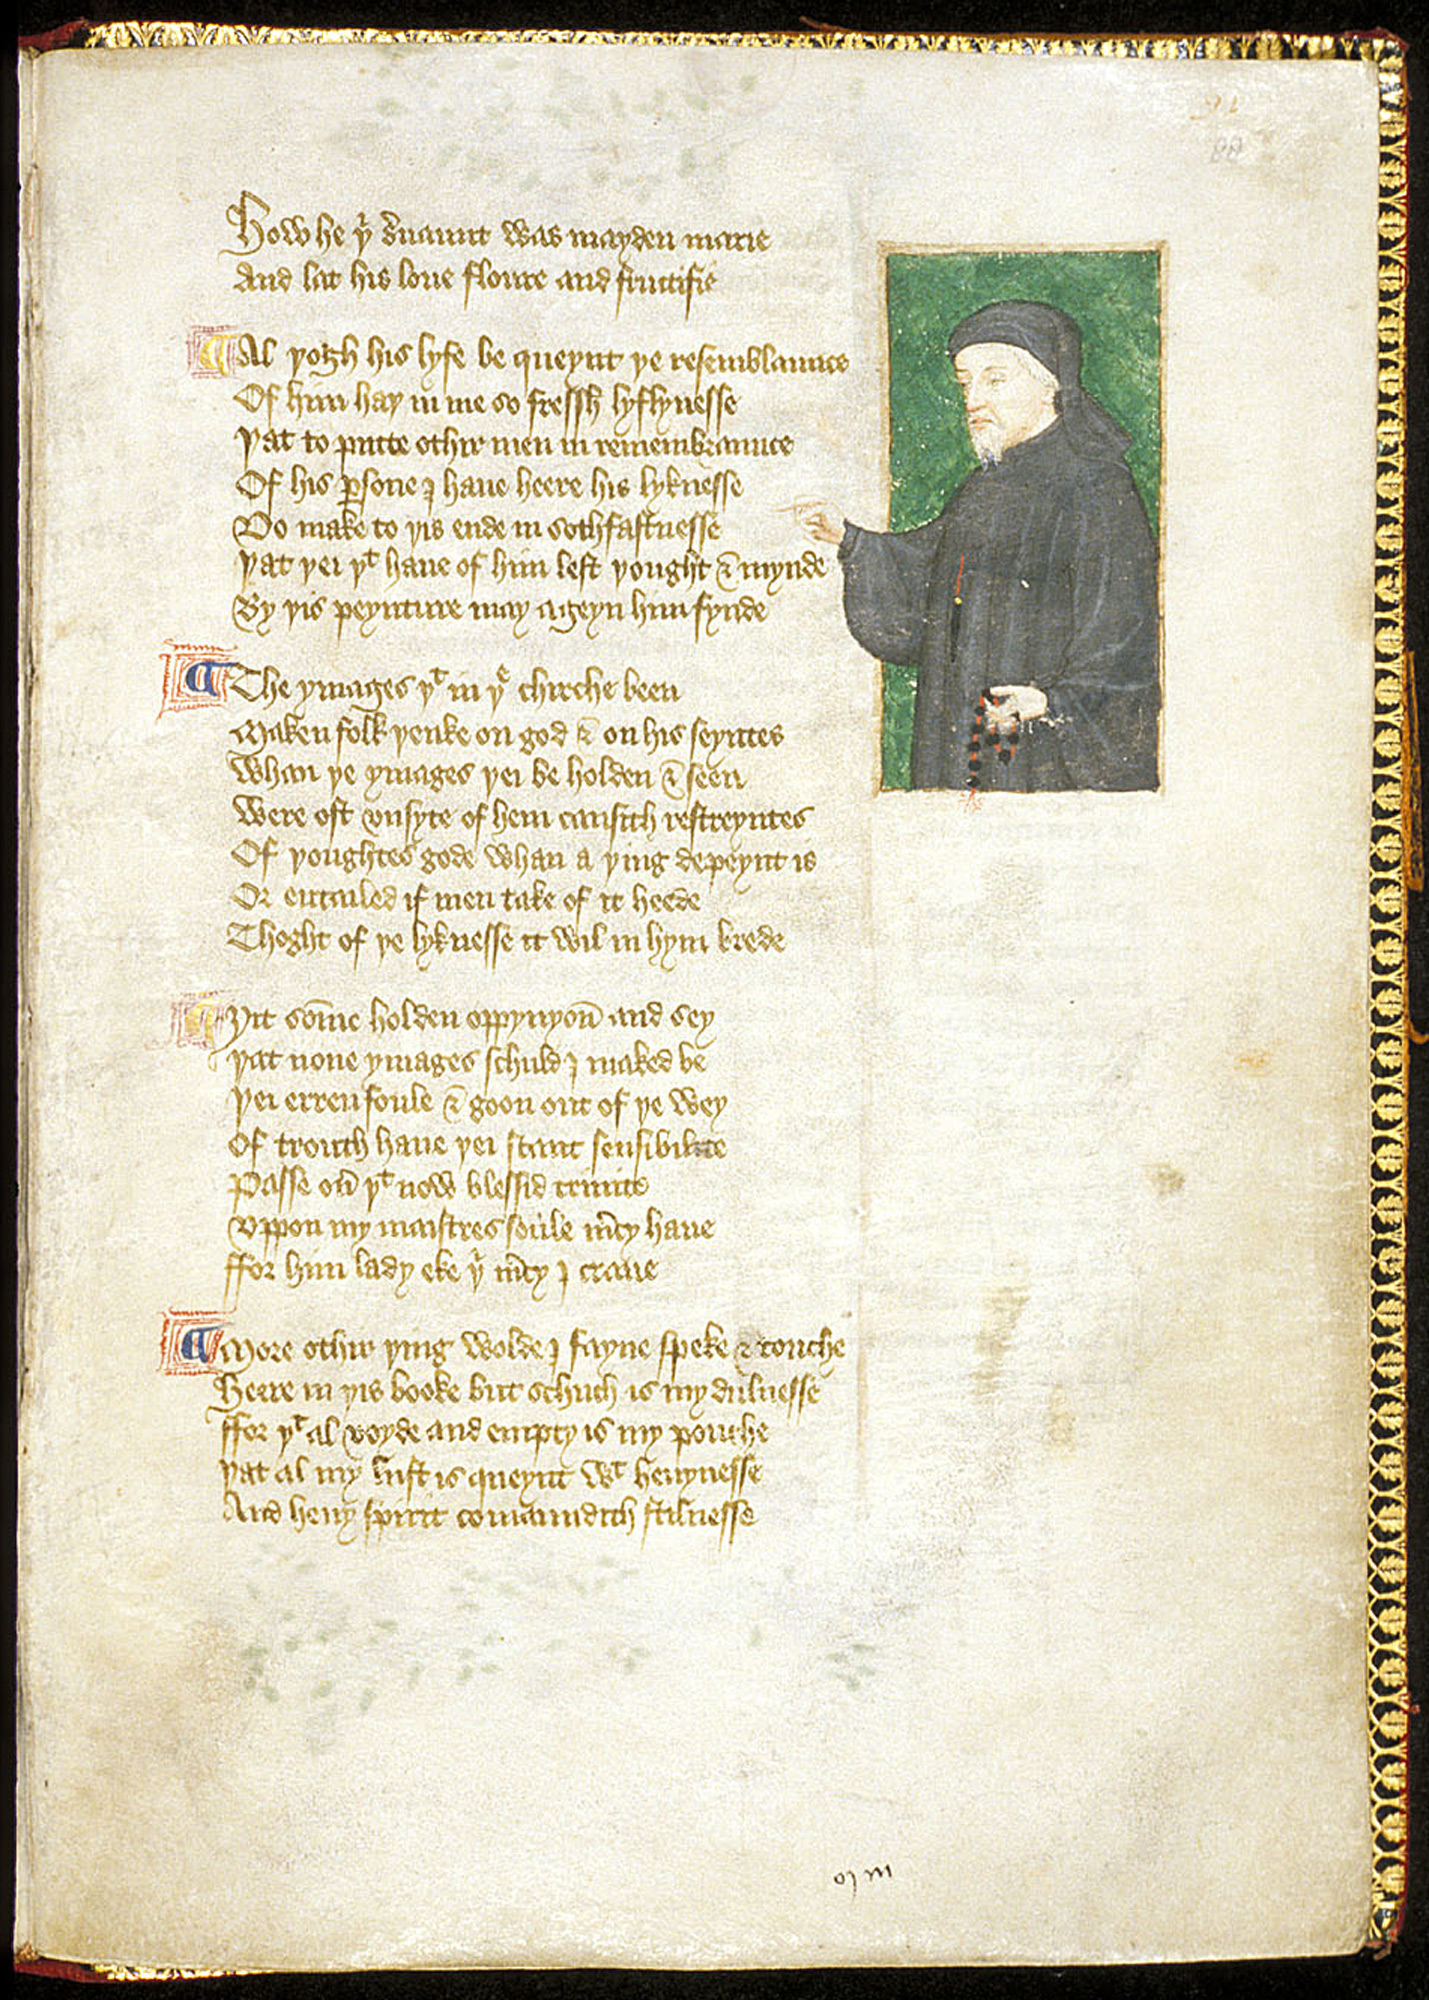 Miniature of Chaucer, from Thomas Hoccleve's The Regiment of Princes